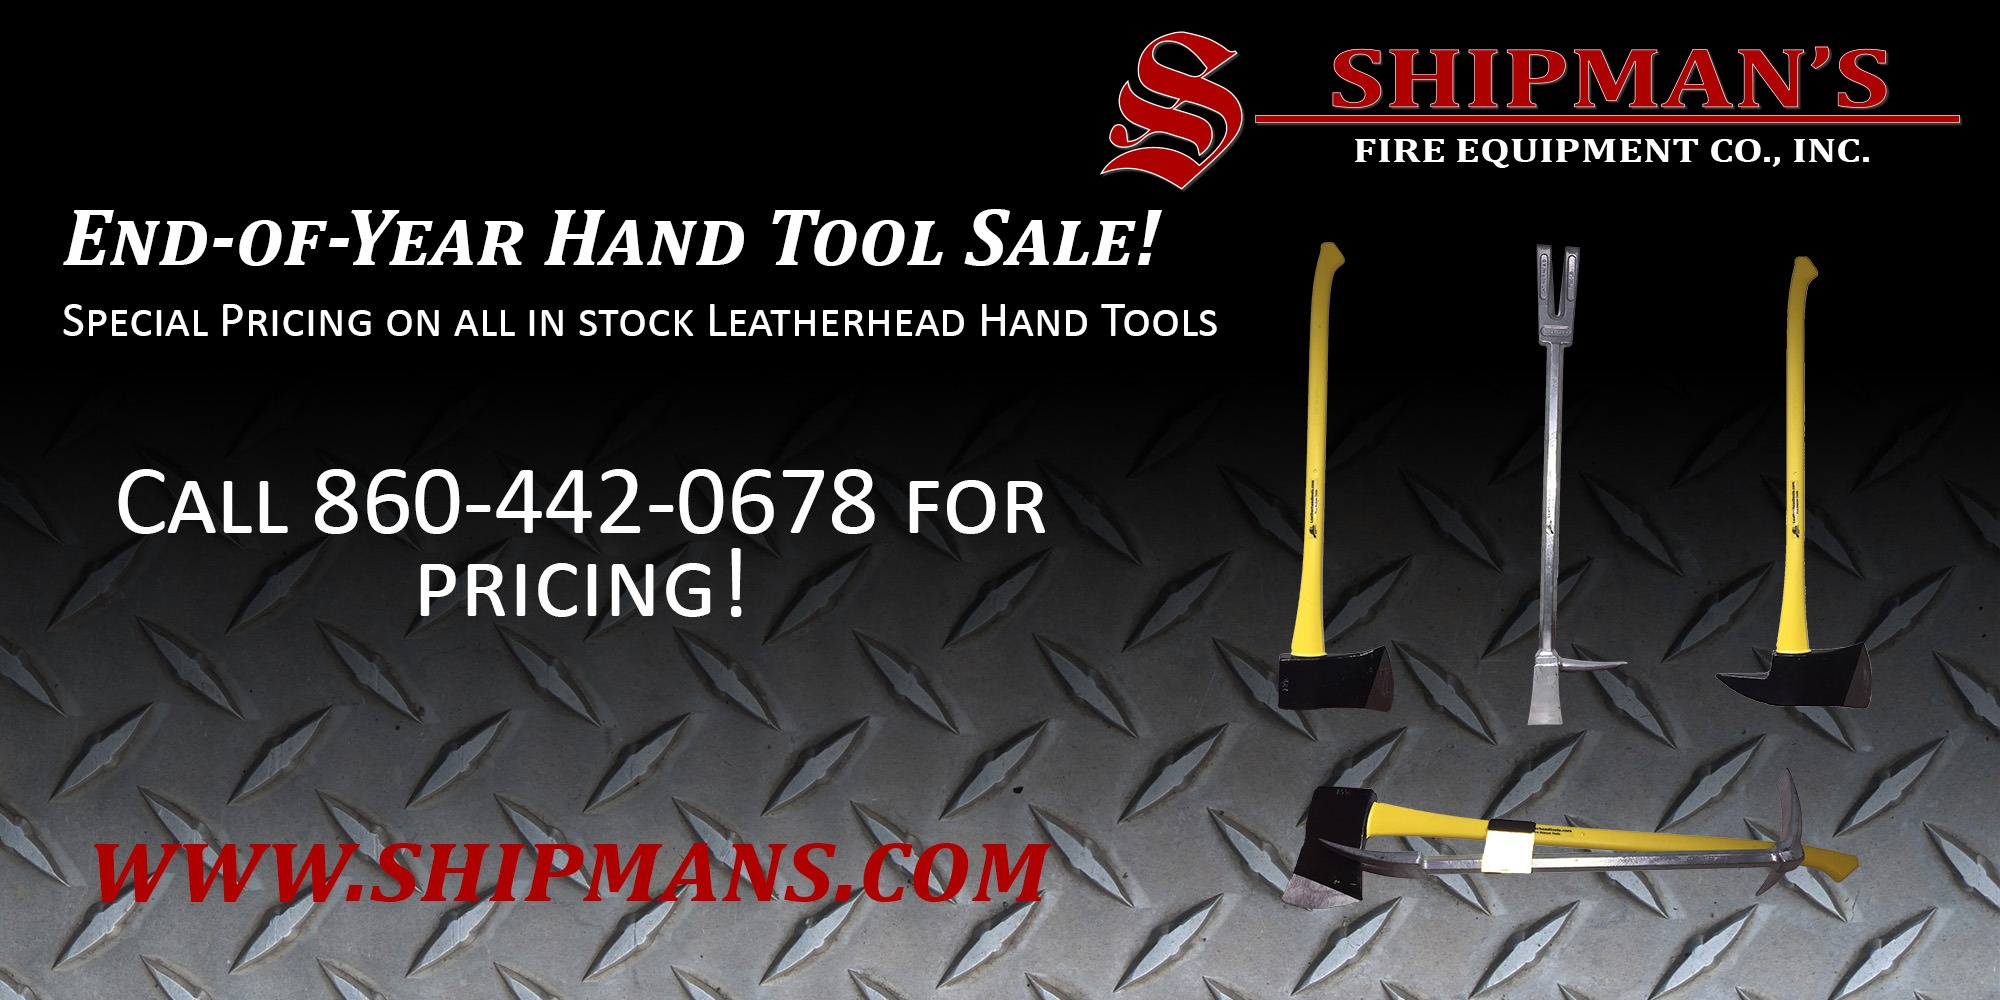 Leatherhead-hand-tools-special-pricing